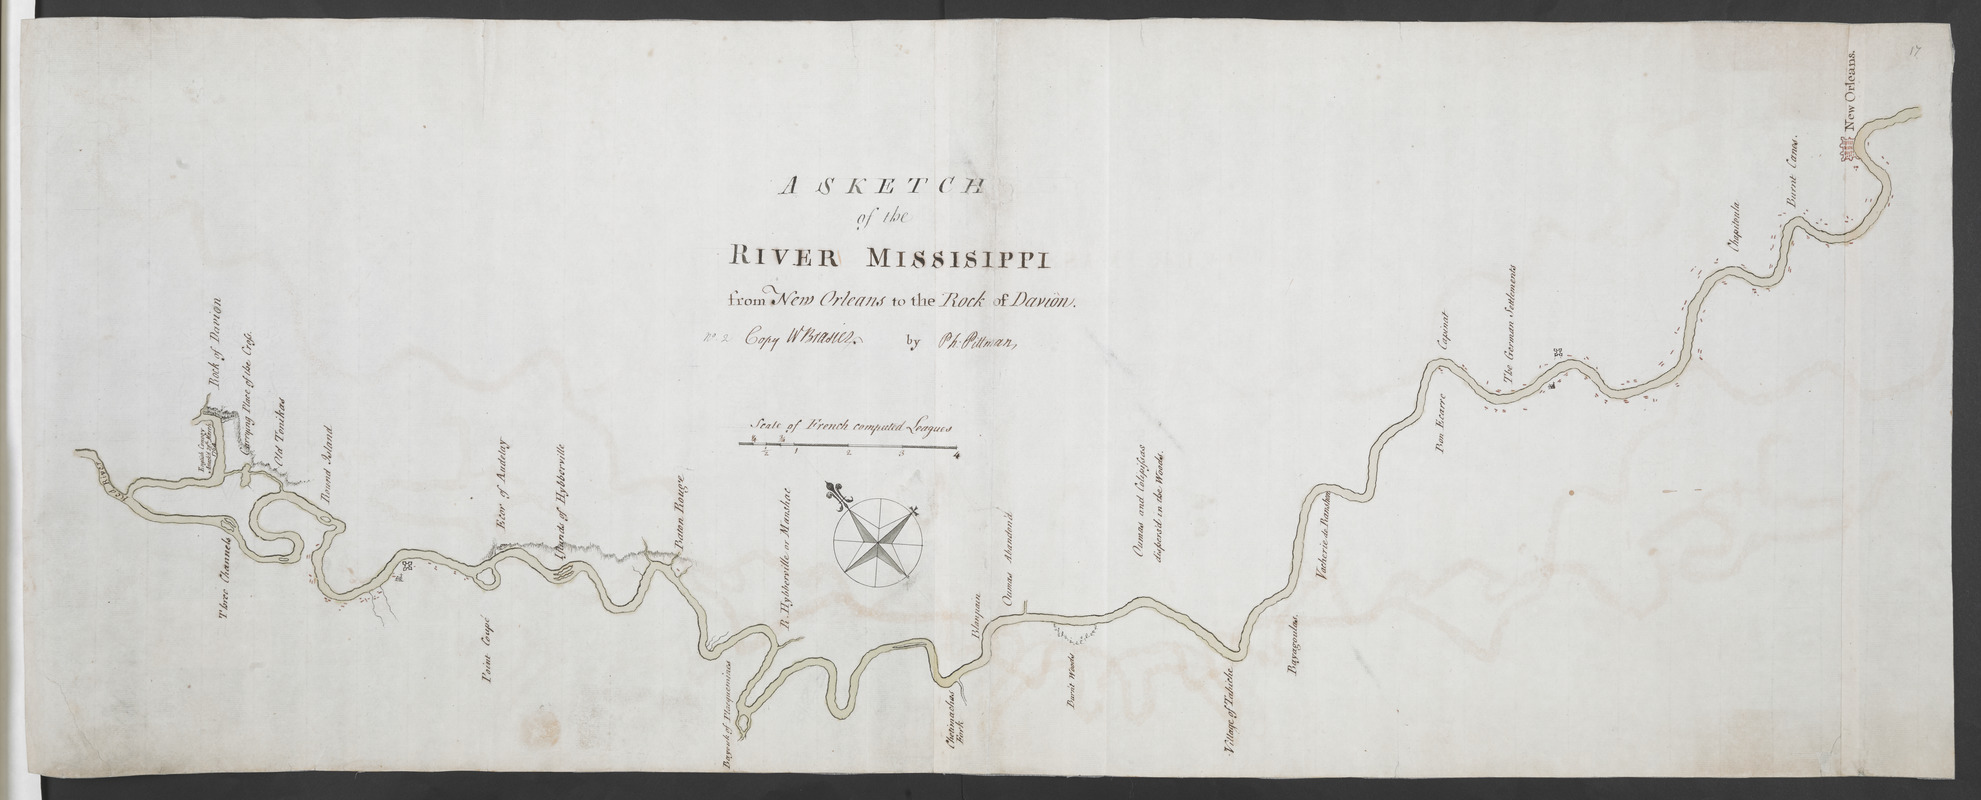 A SKETCH of the RIVER MISSISIPPI from New Orleans to the Rock of Davion